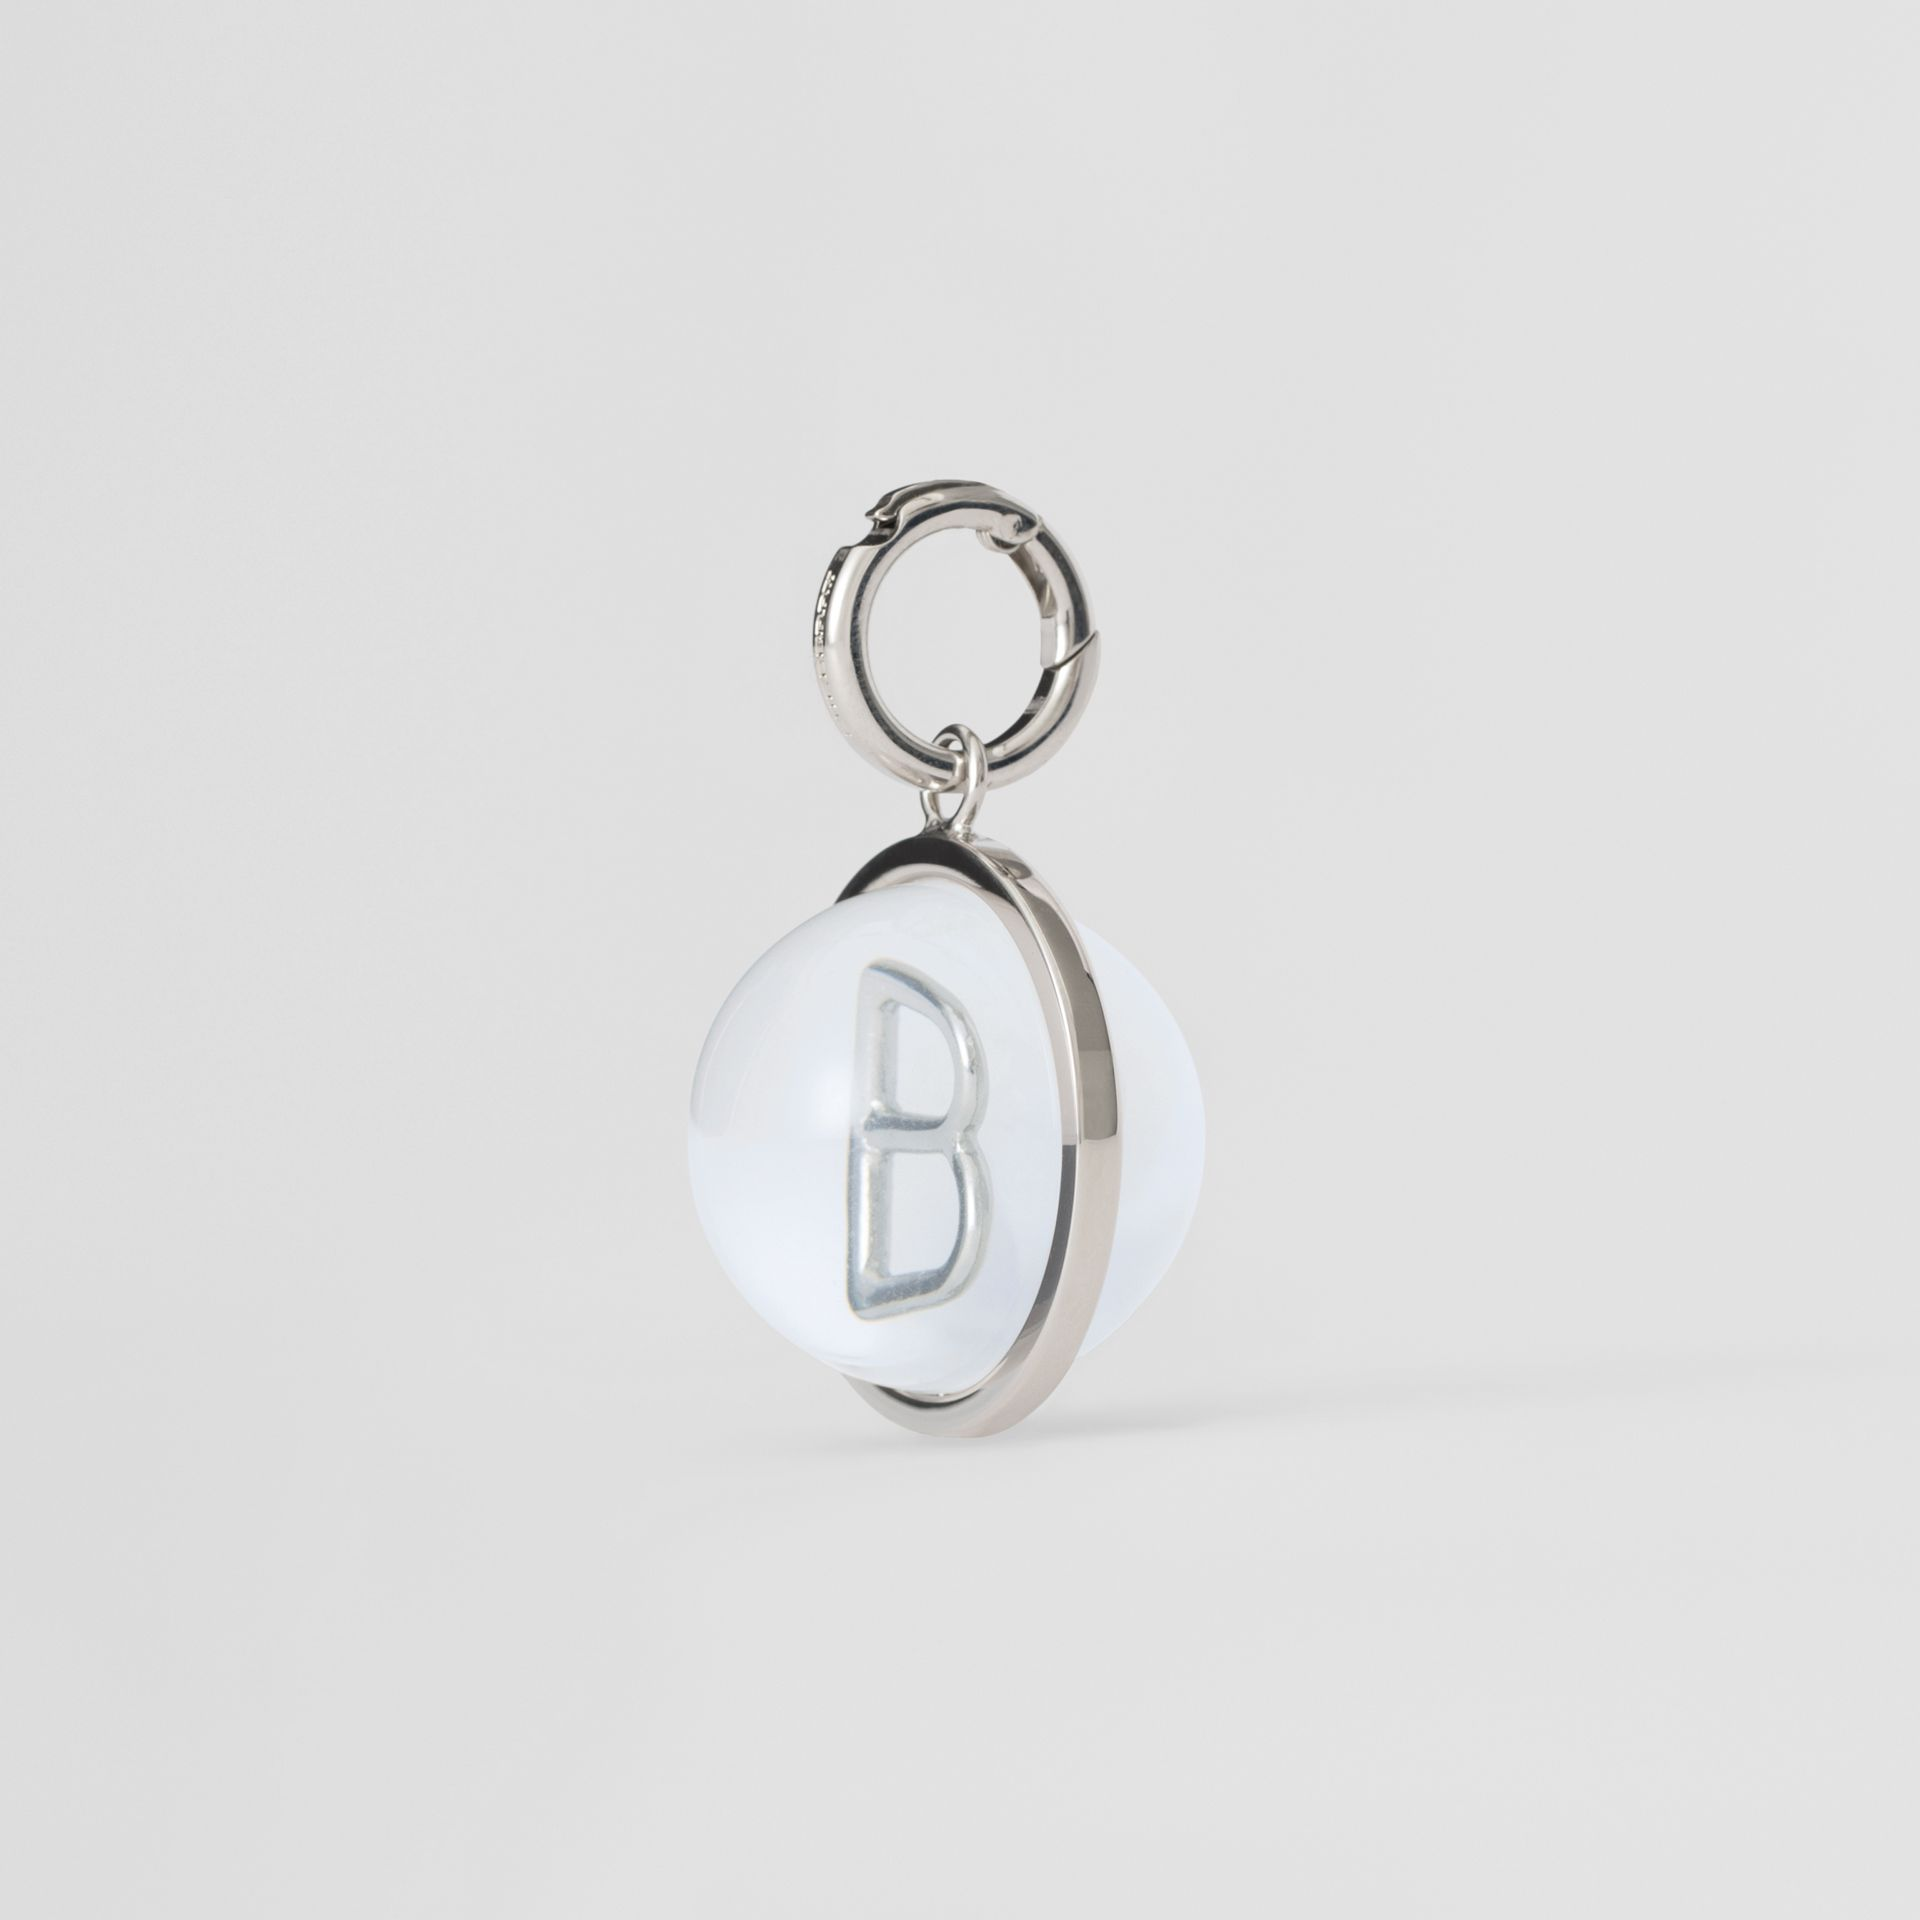 Marbled Resin 'B' Alphabet Charm in Palladio/nacre - Women | Burberry - gallery image 4